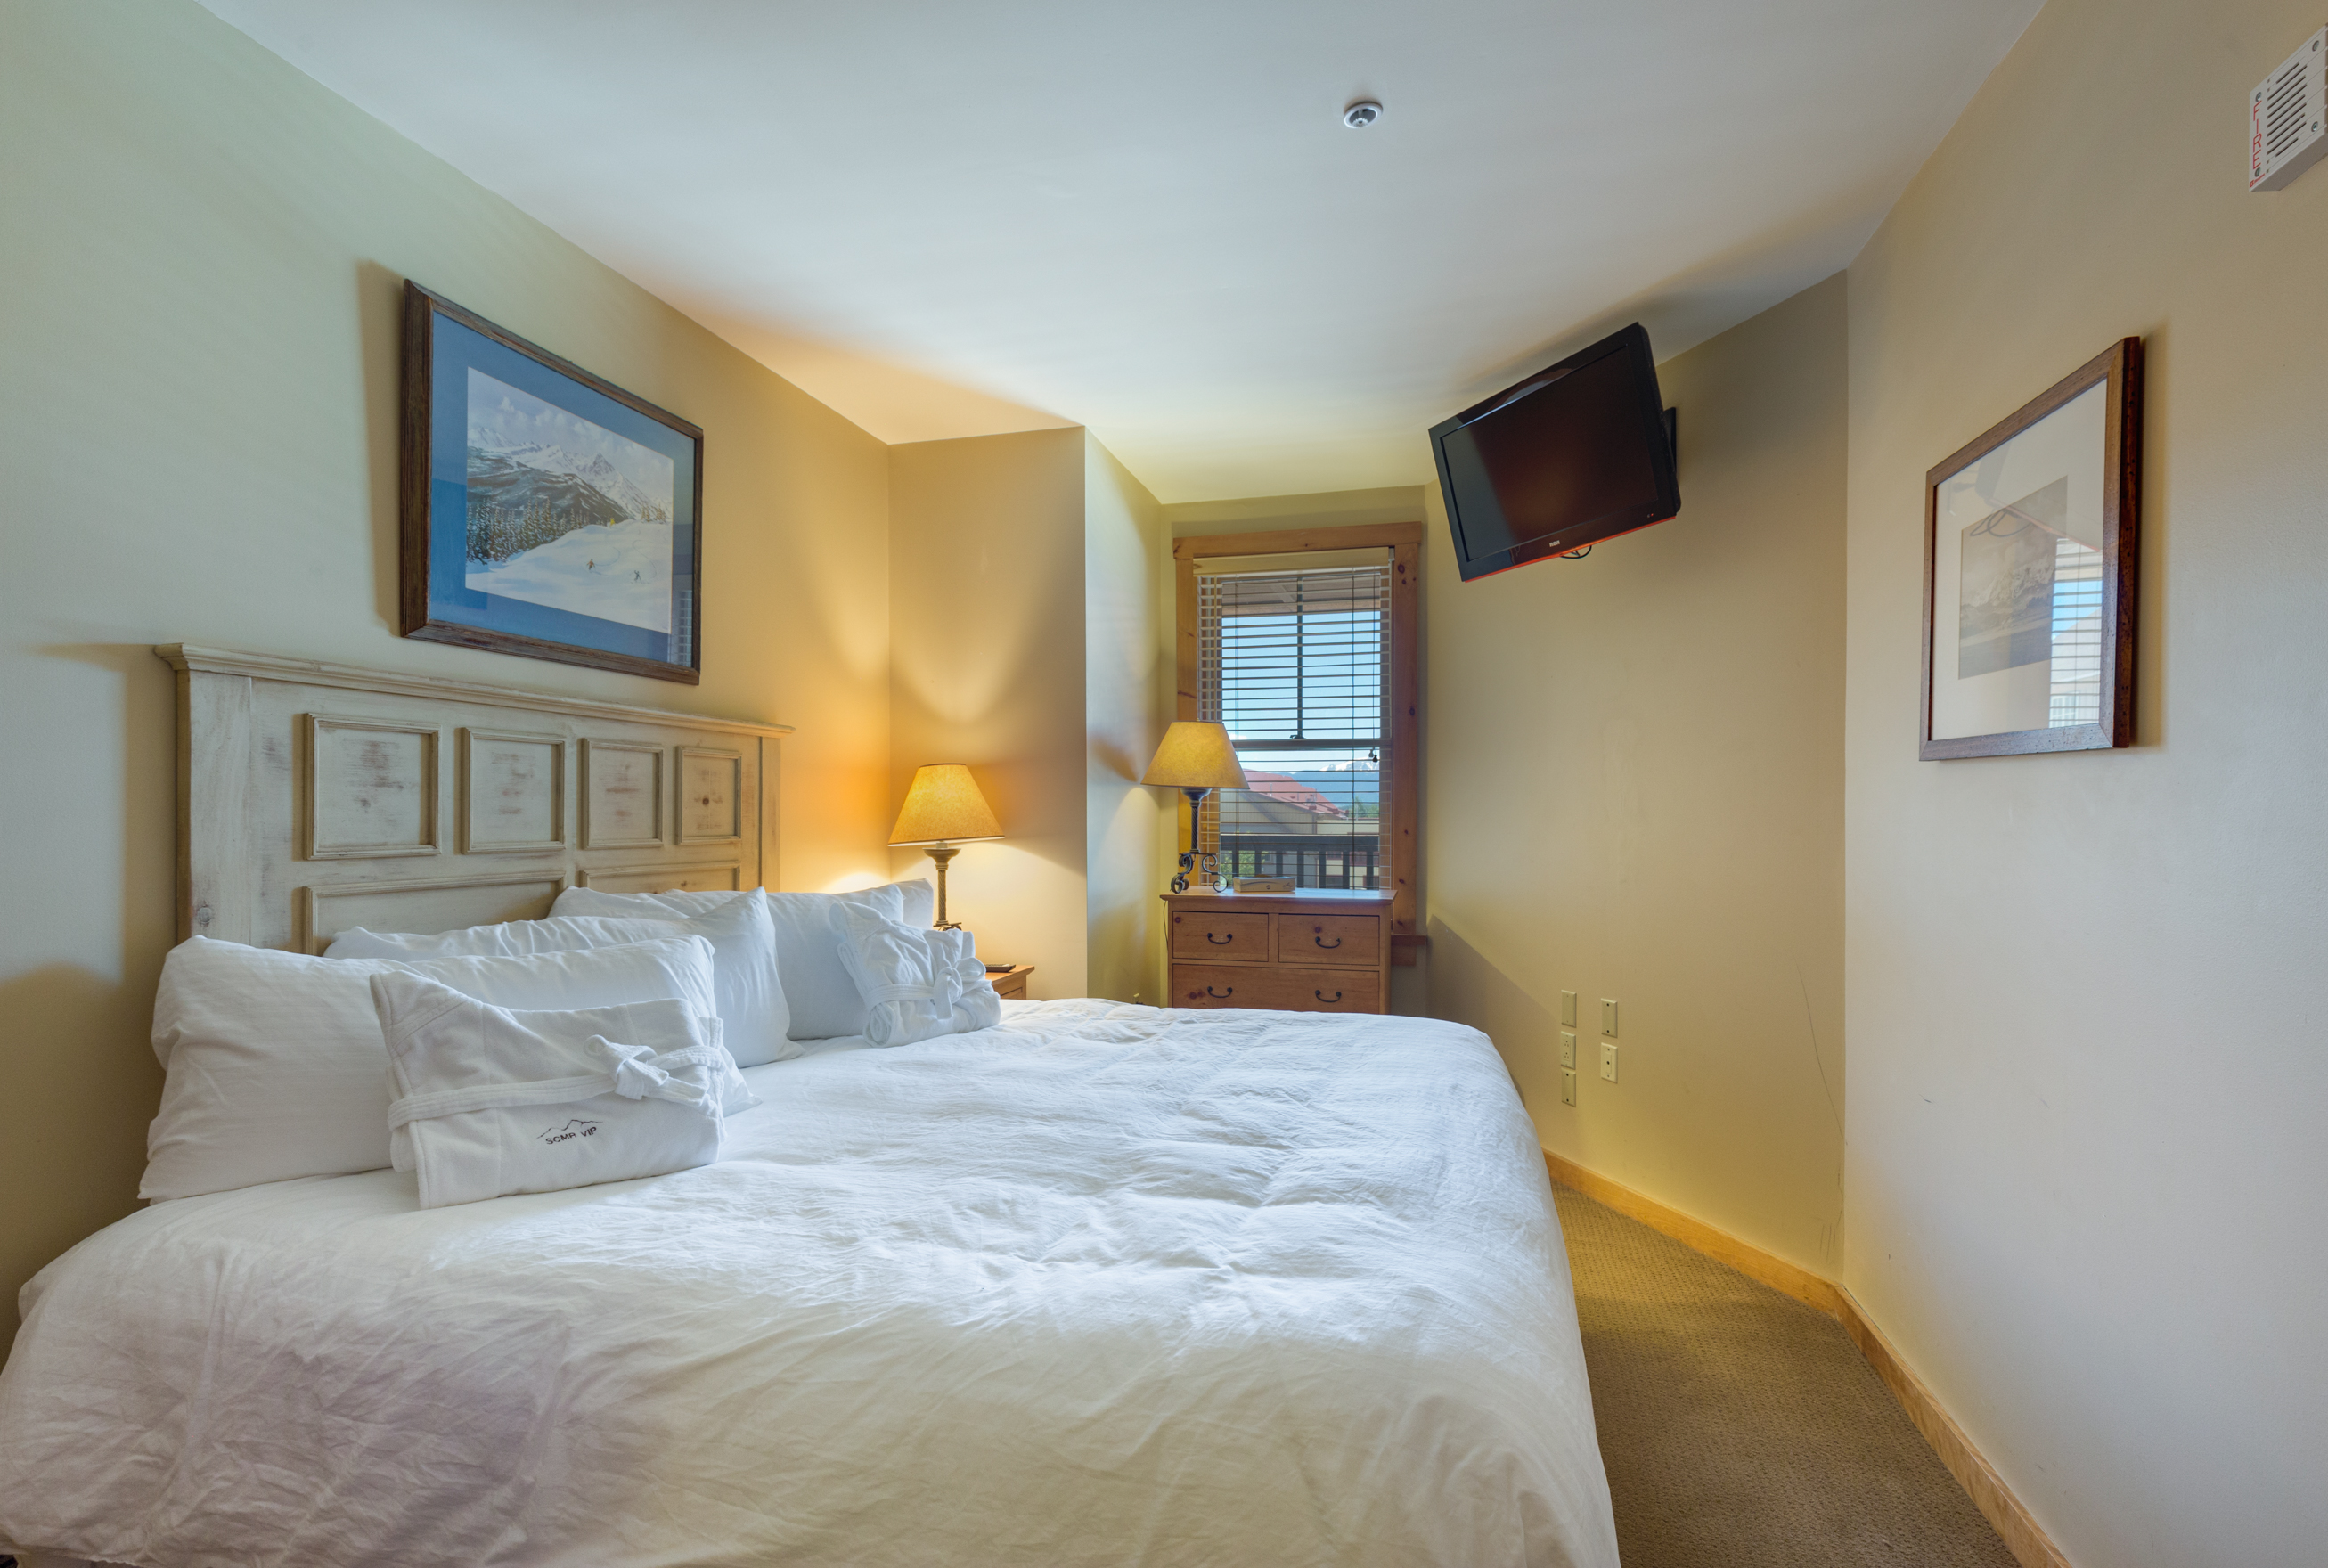 The second guest bedroom features a king-sized bed with Ivory White Bedding and a flat screen TV.